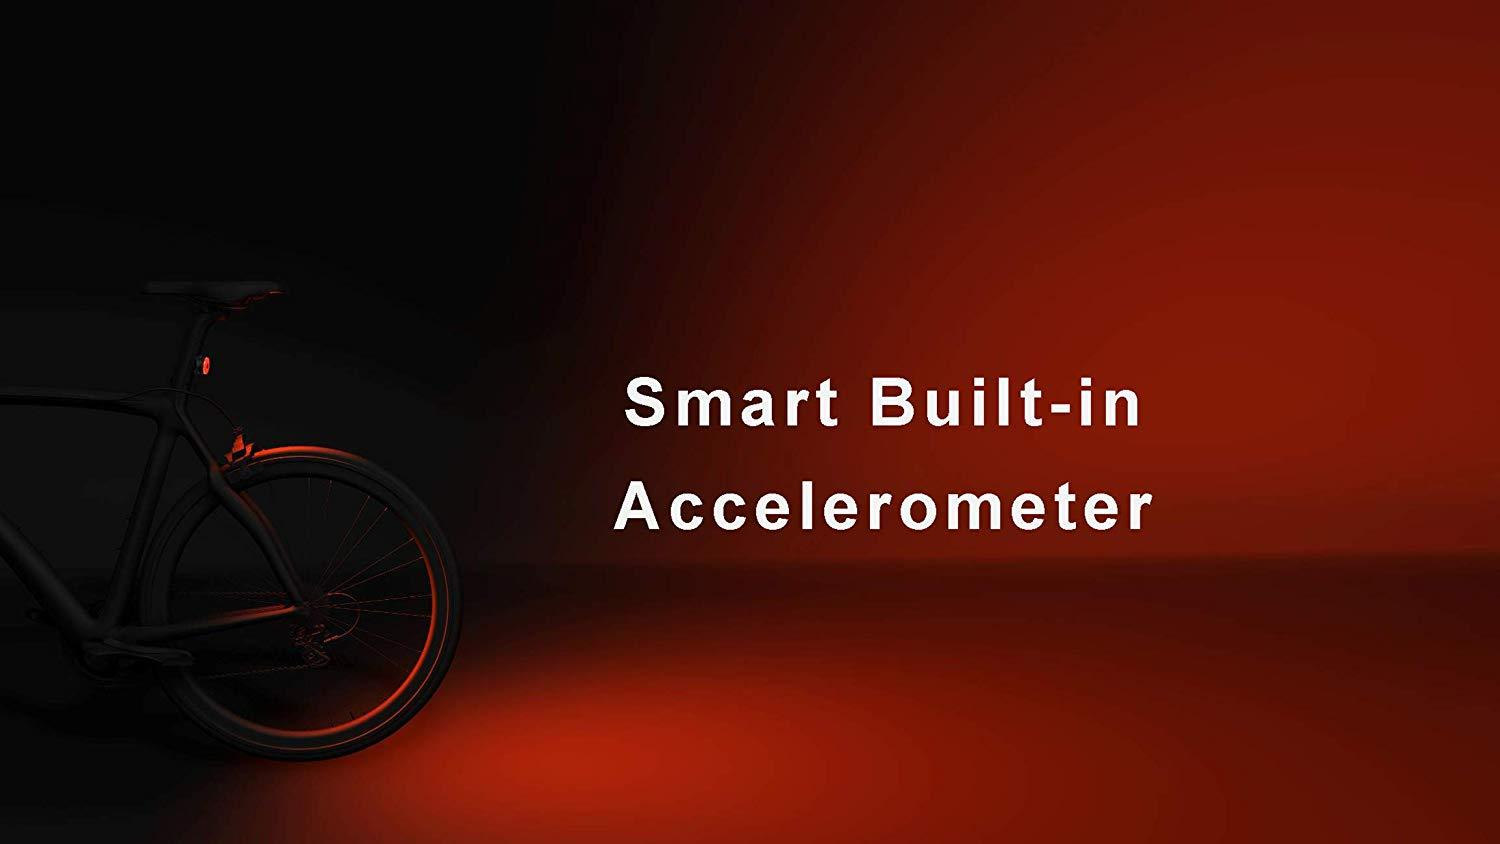 Smart Built-in Accelerometer Cycling Lights, High Power COB Bike Light, USB charge Bicycle Light, Waterproof Tail Light Sewosports